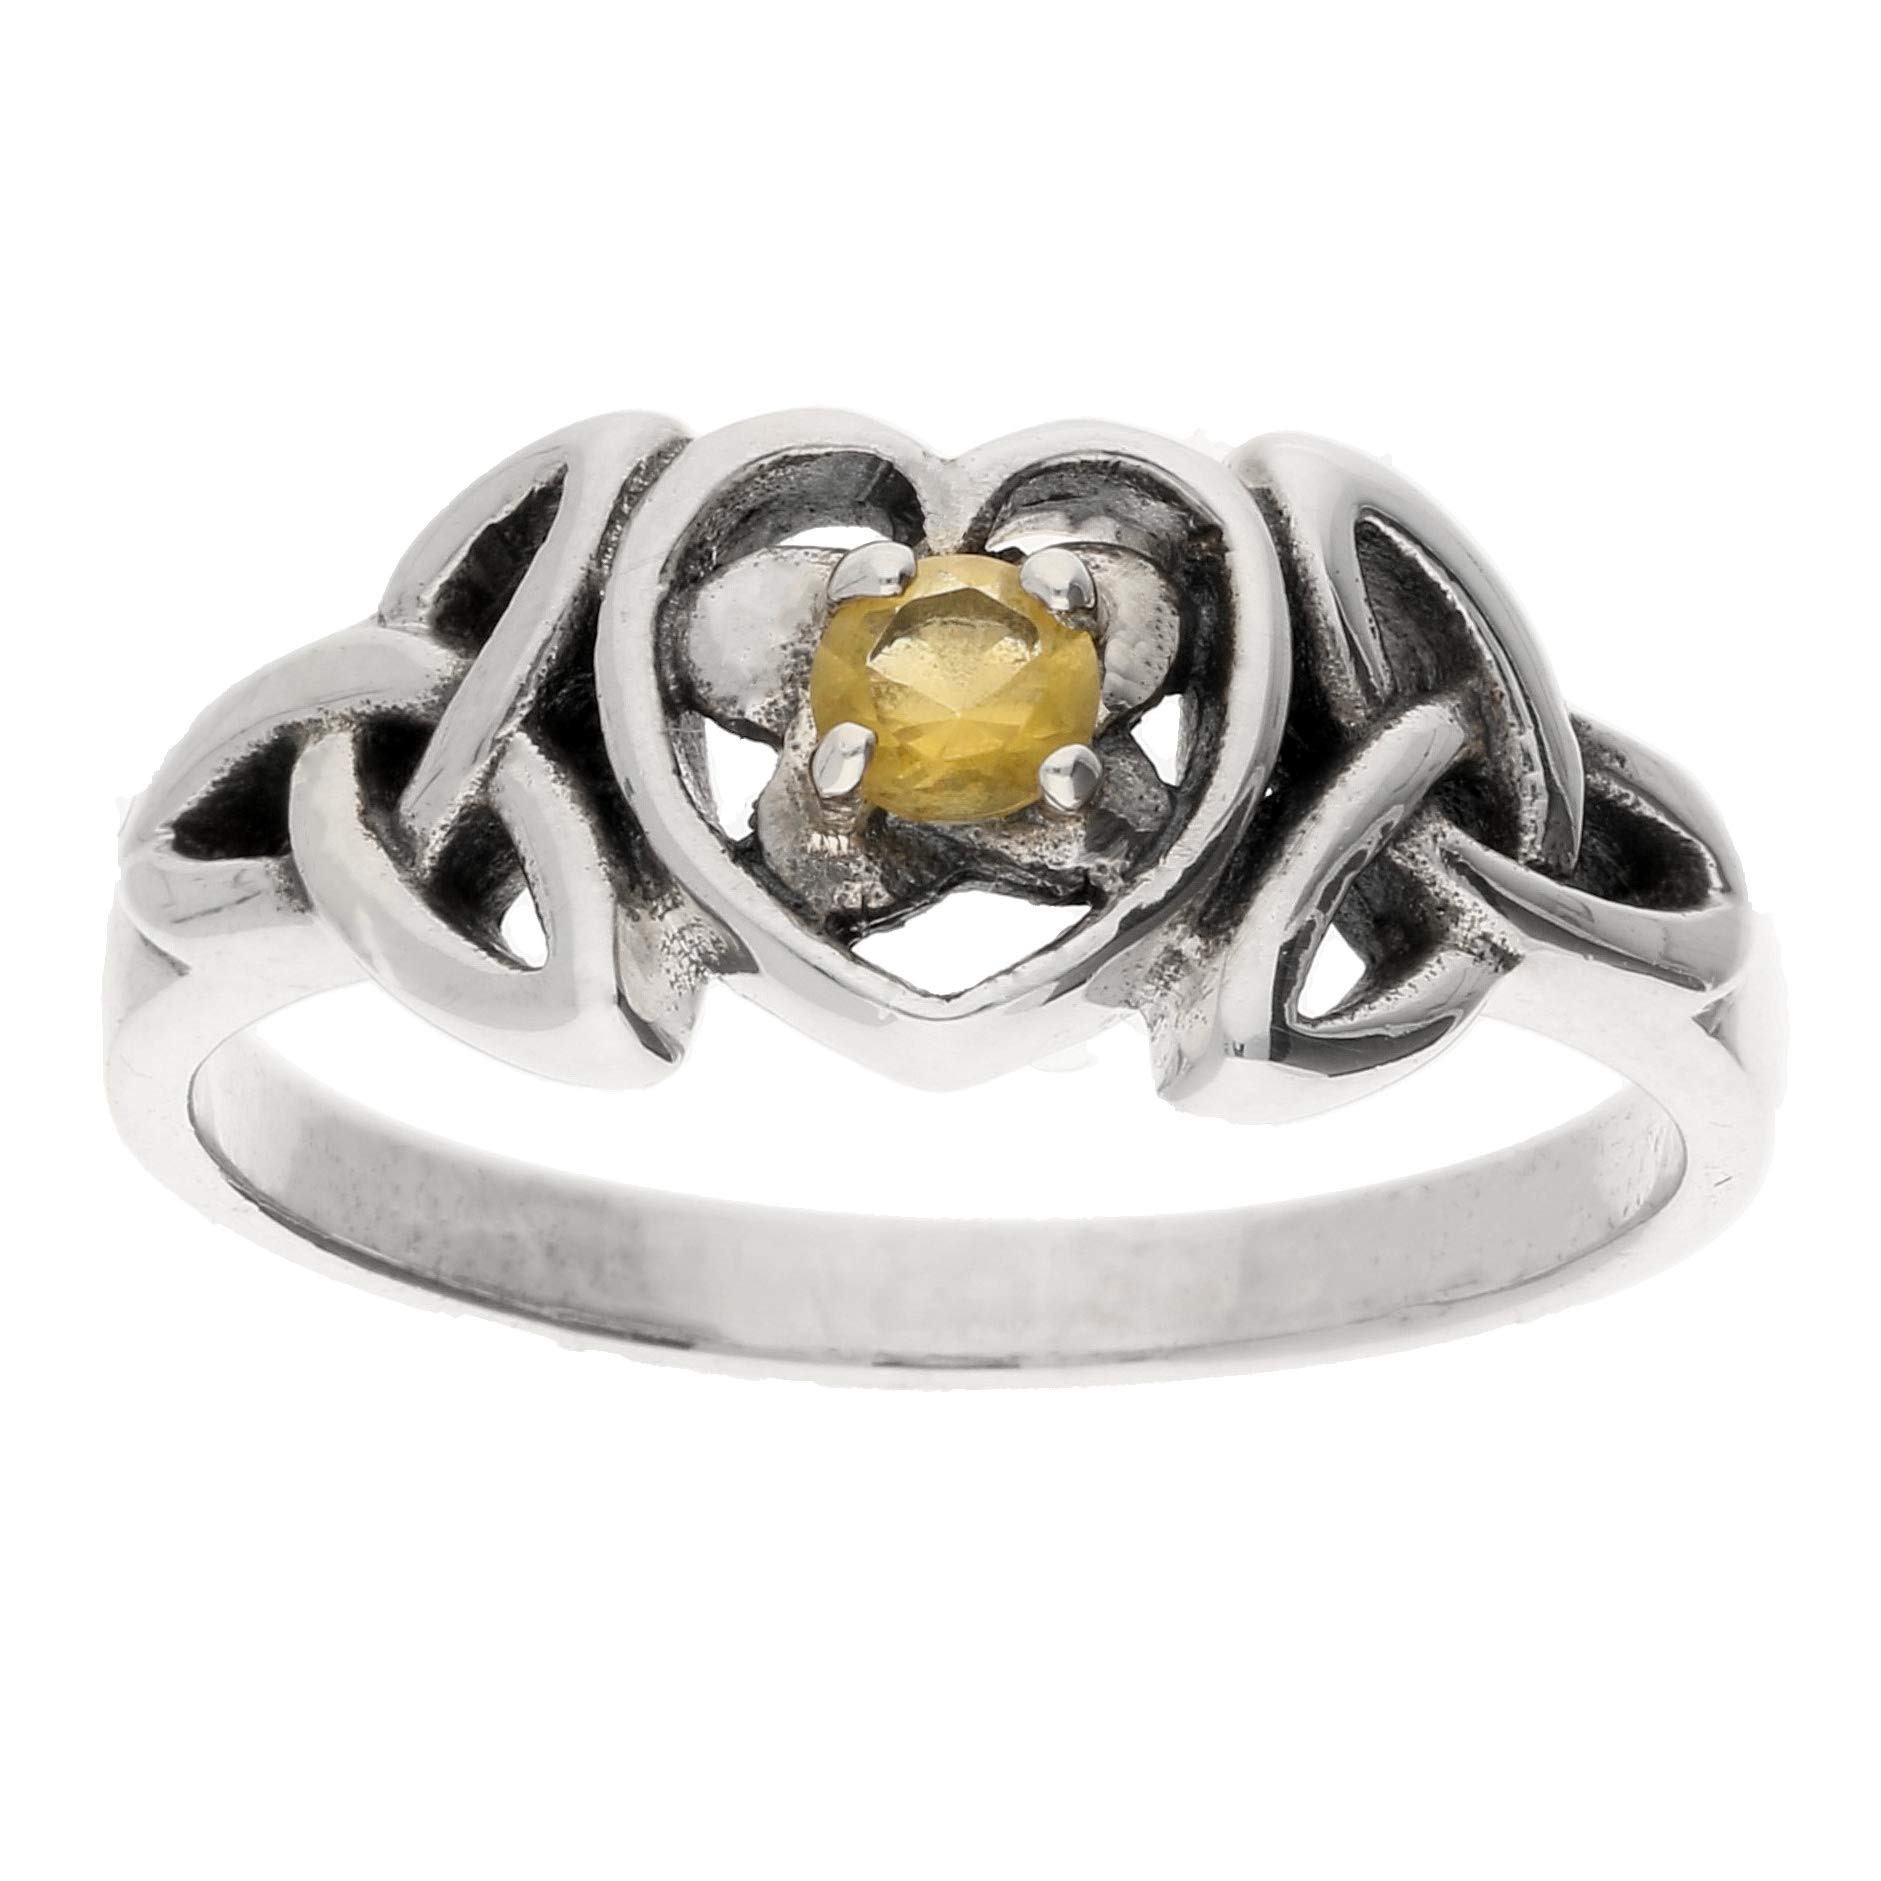 November Birthstone Ring - Sterling Silver Simulated Citrine Glass Celtic Trinity Knot Heart Size 5(Sizes 4,5,6,7,8,9,10)